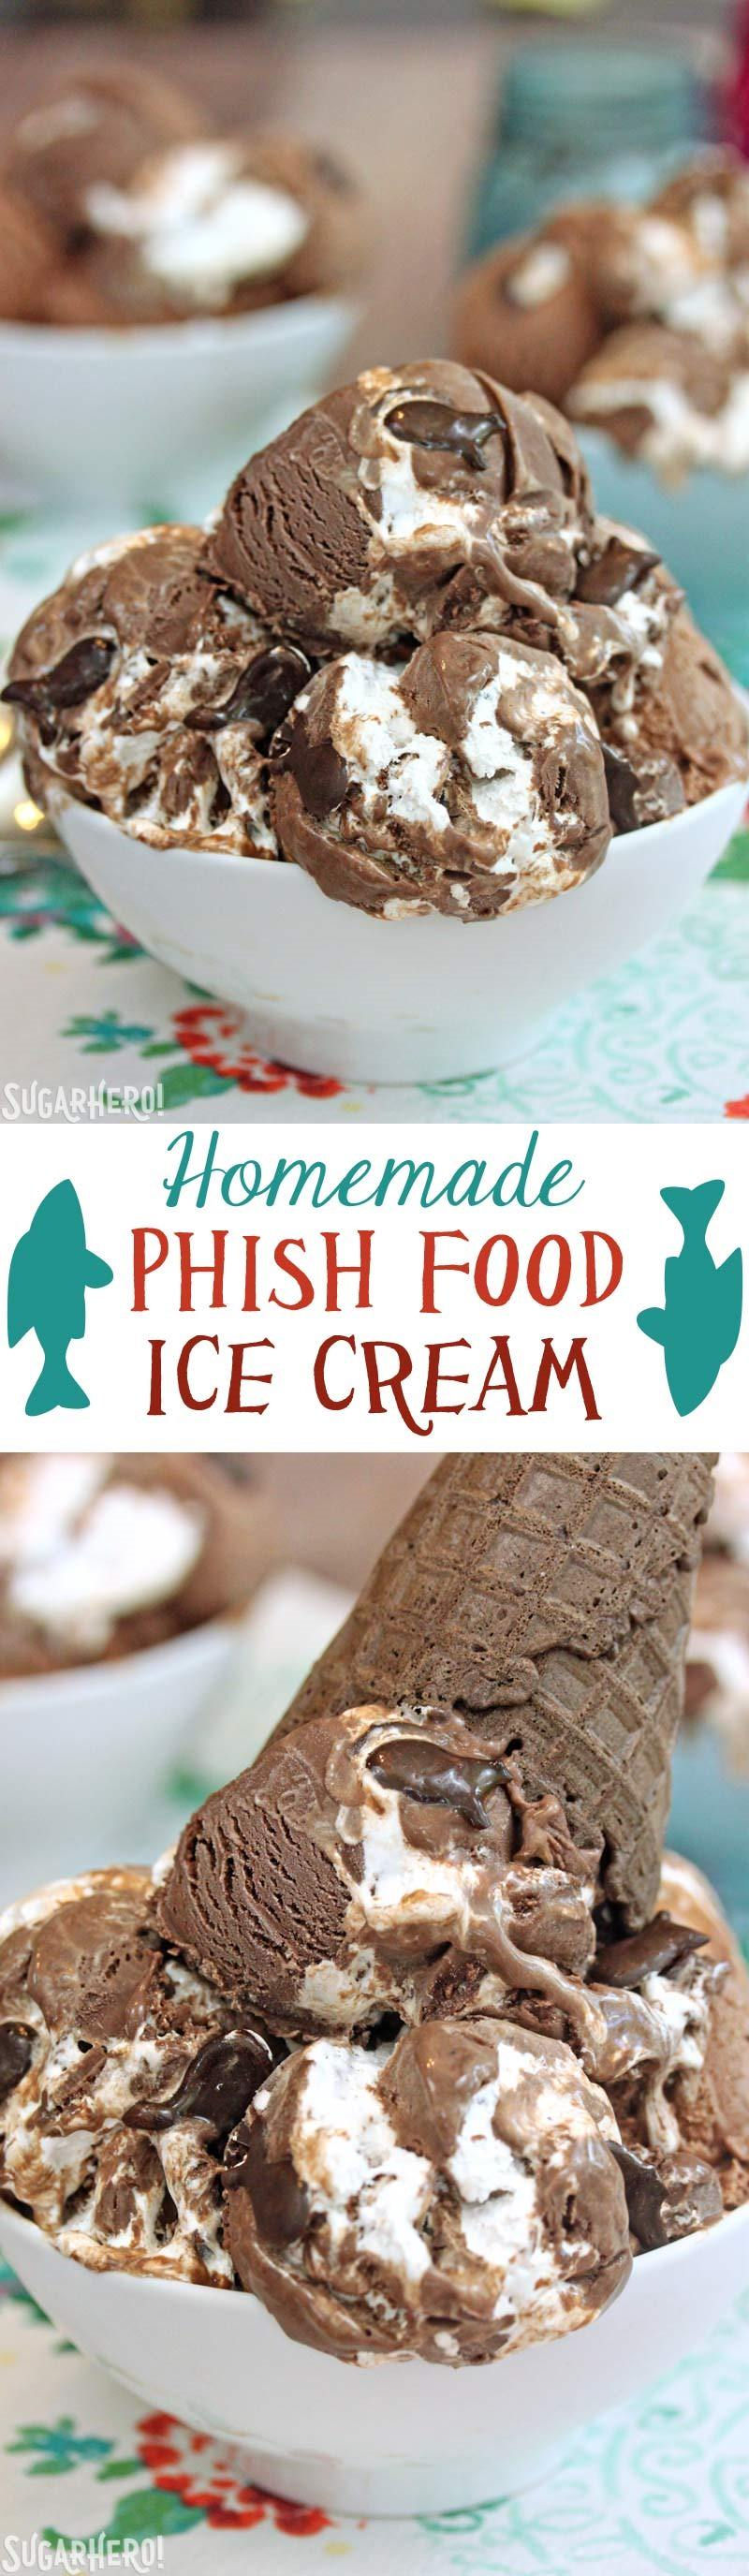 Homemade Phish Food Ice Cream | From SugarHero.com